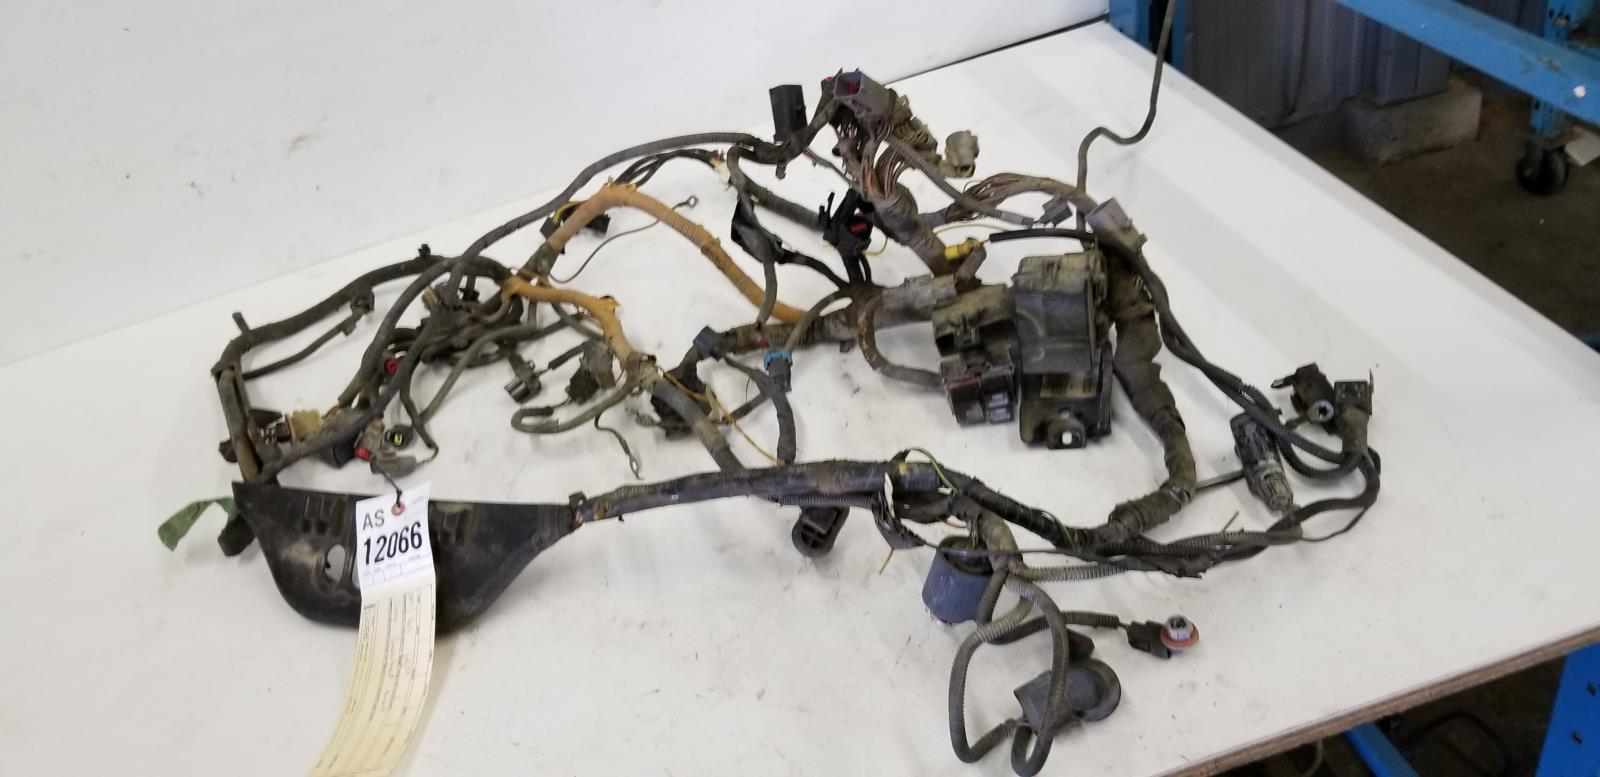 hight resolution of details about 2004 ford f350 6 0 engine compartment harness 4c3t 12a851 p160e amf as12066